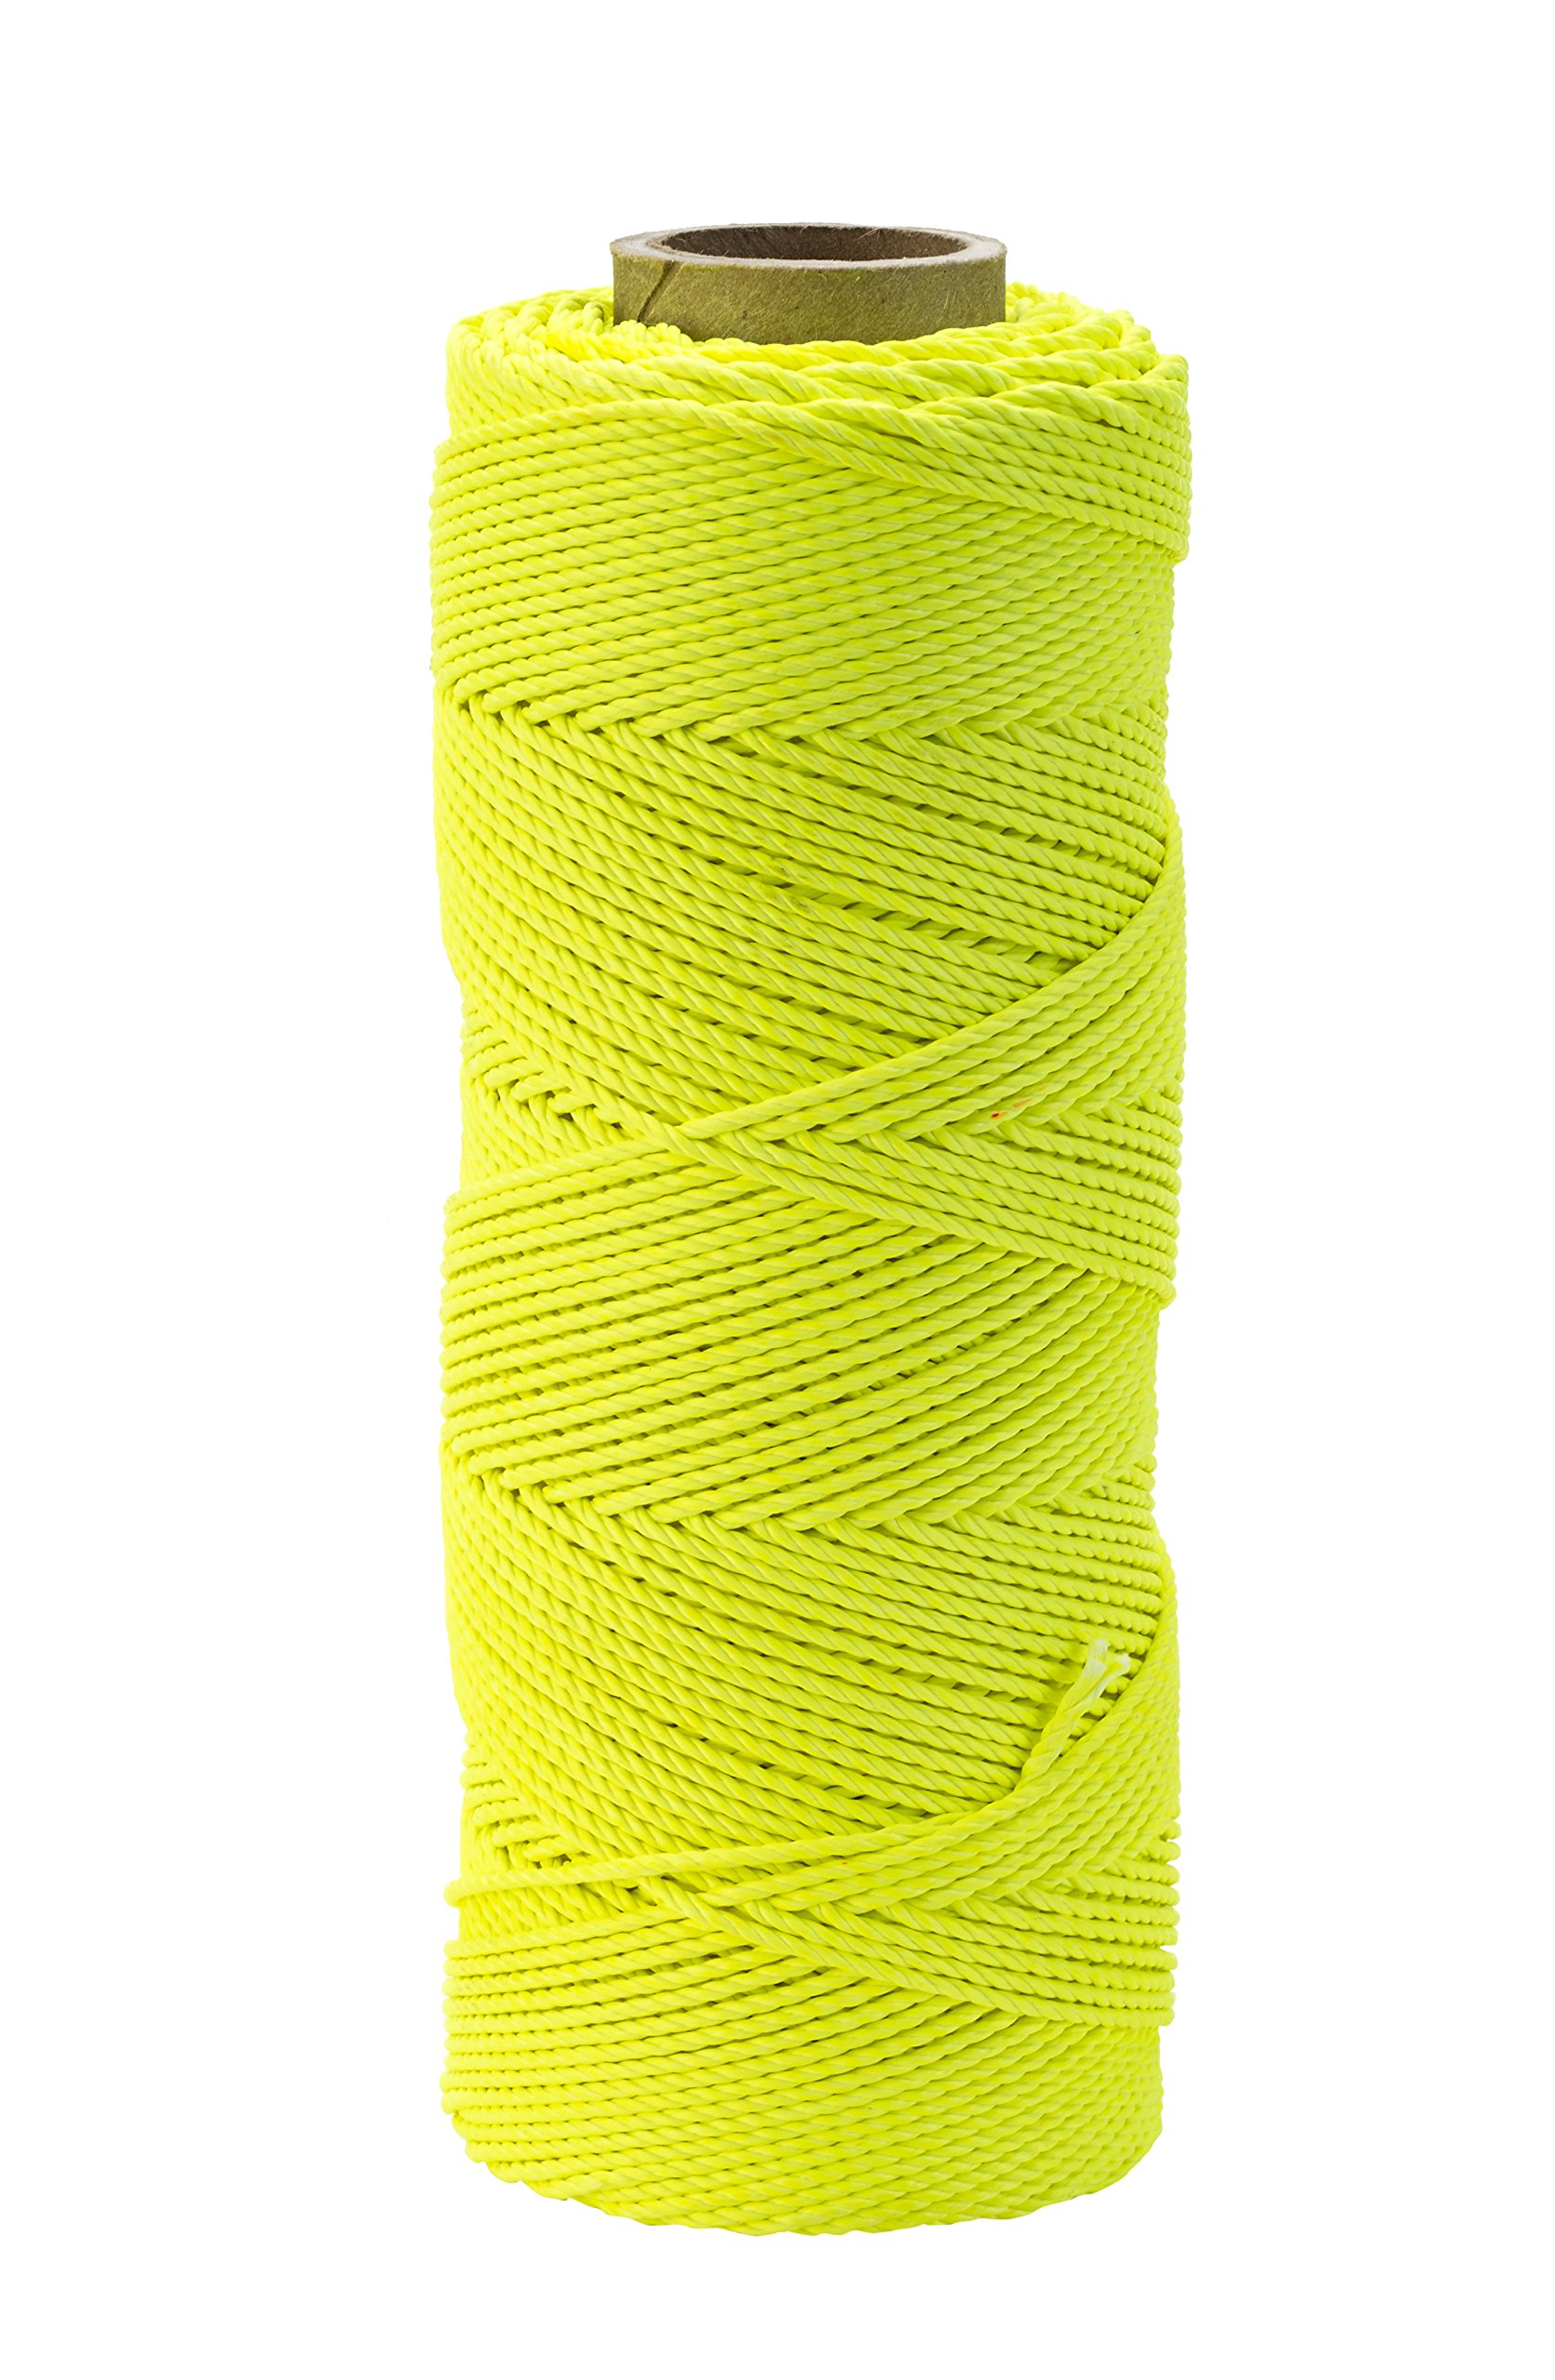 Mutual Industries 14662-139-1000 Nylon Mason Twine, 1lb. Braided, 18 x 1000', Glo Lime (Pack of 4) by Mutual Industries